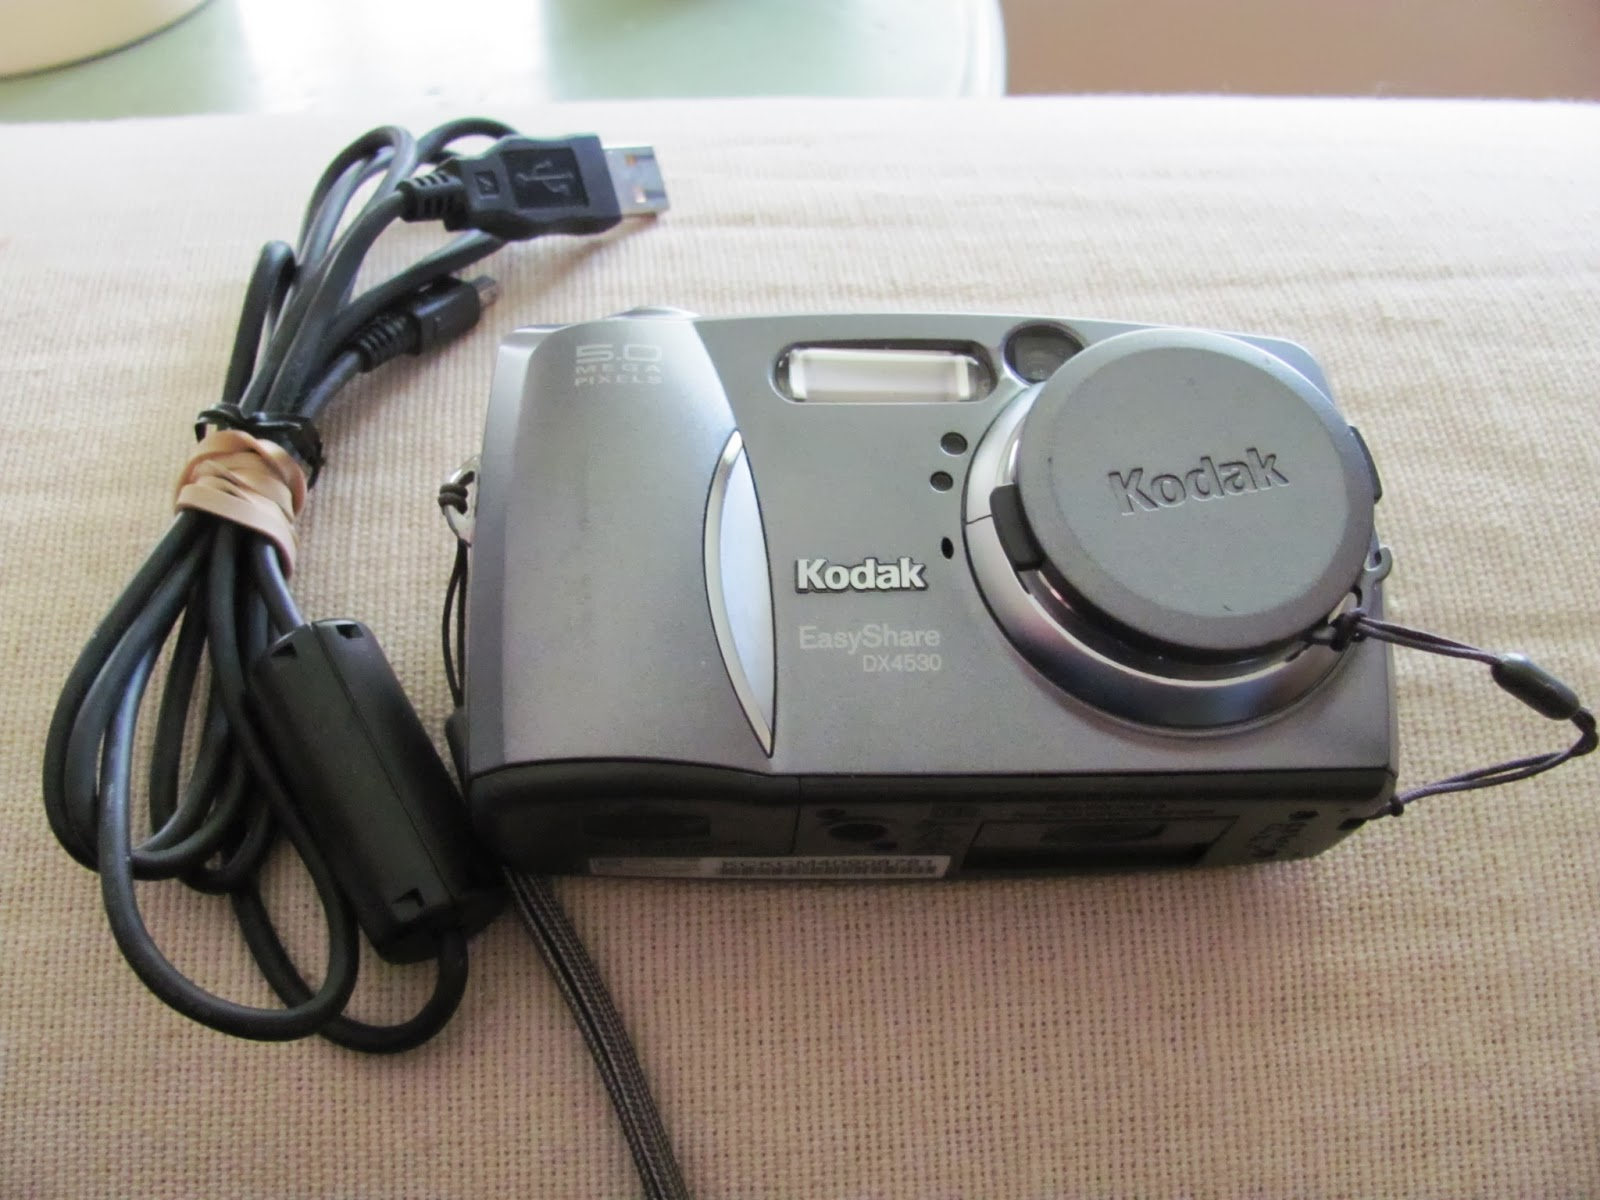 Our old Kodak digital camera on display before being sold on Craigslist